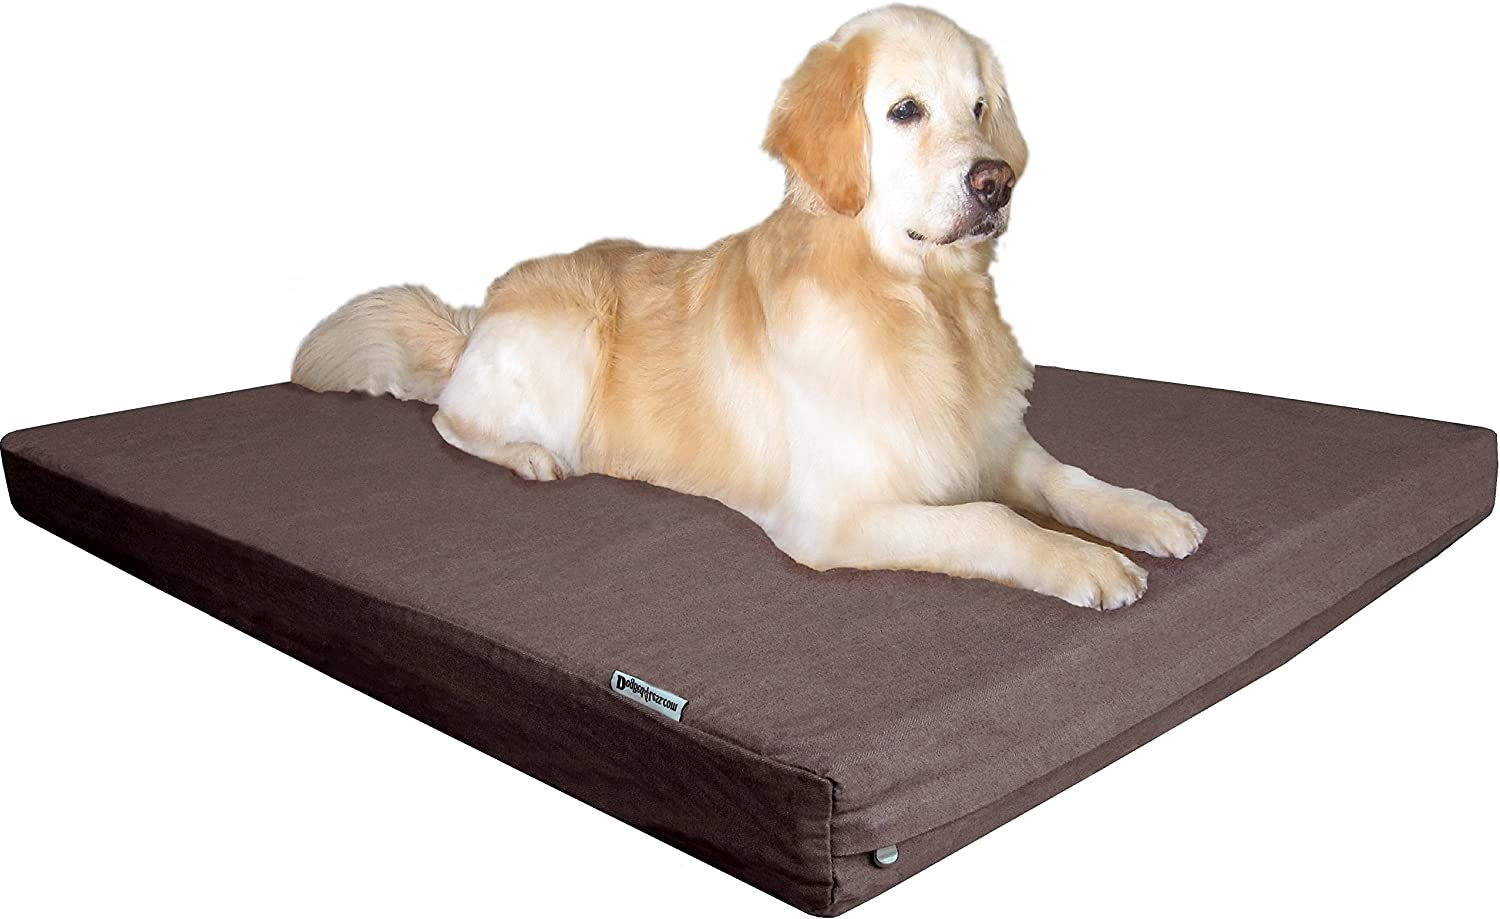 Dogbed4less Jumbo Heavy Duty Orthopedic Gel Memory Foam Pet Bed with Waterproof Internal Case 2 Washable Denim External Cover for Big Dog